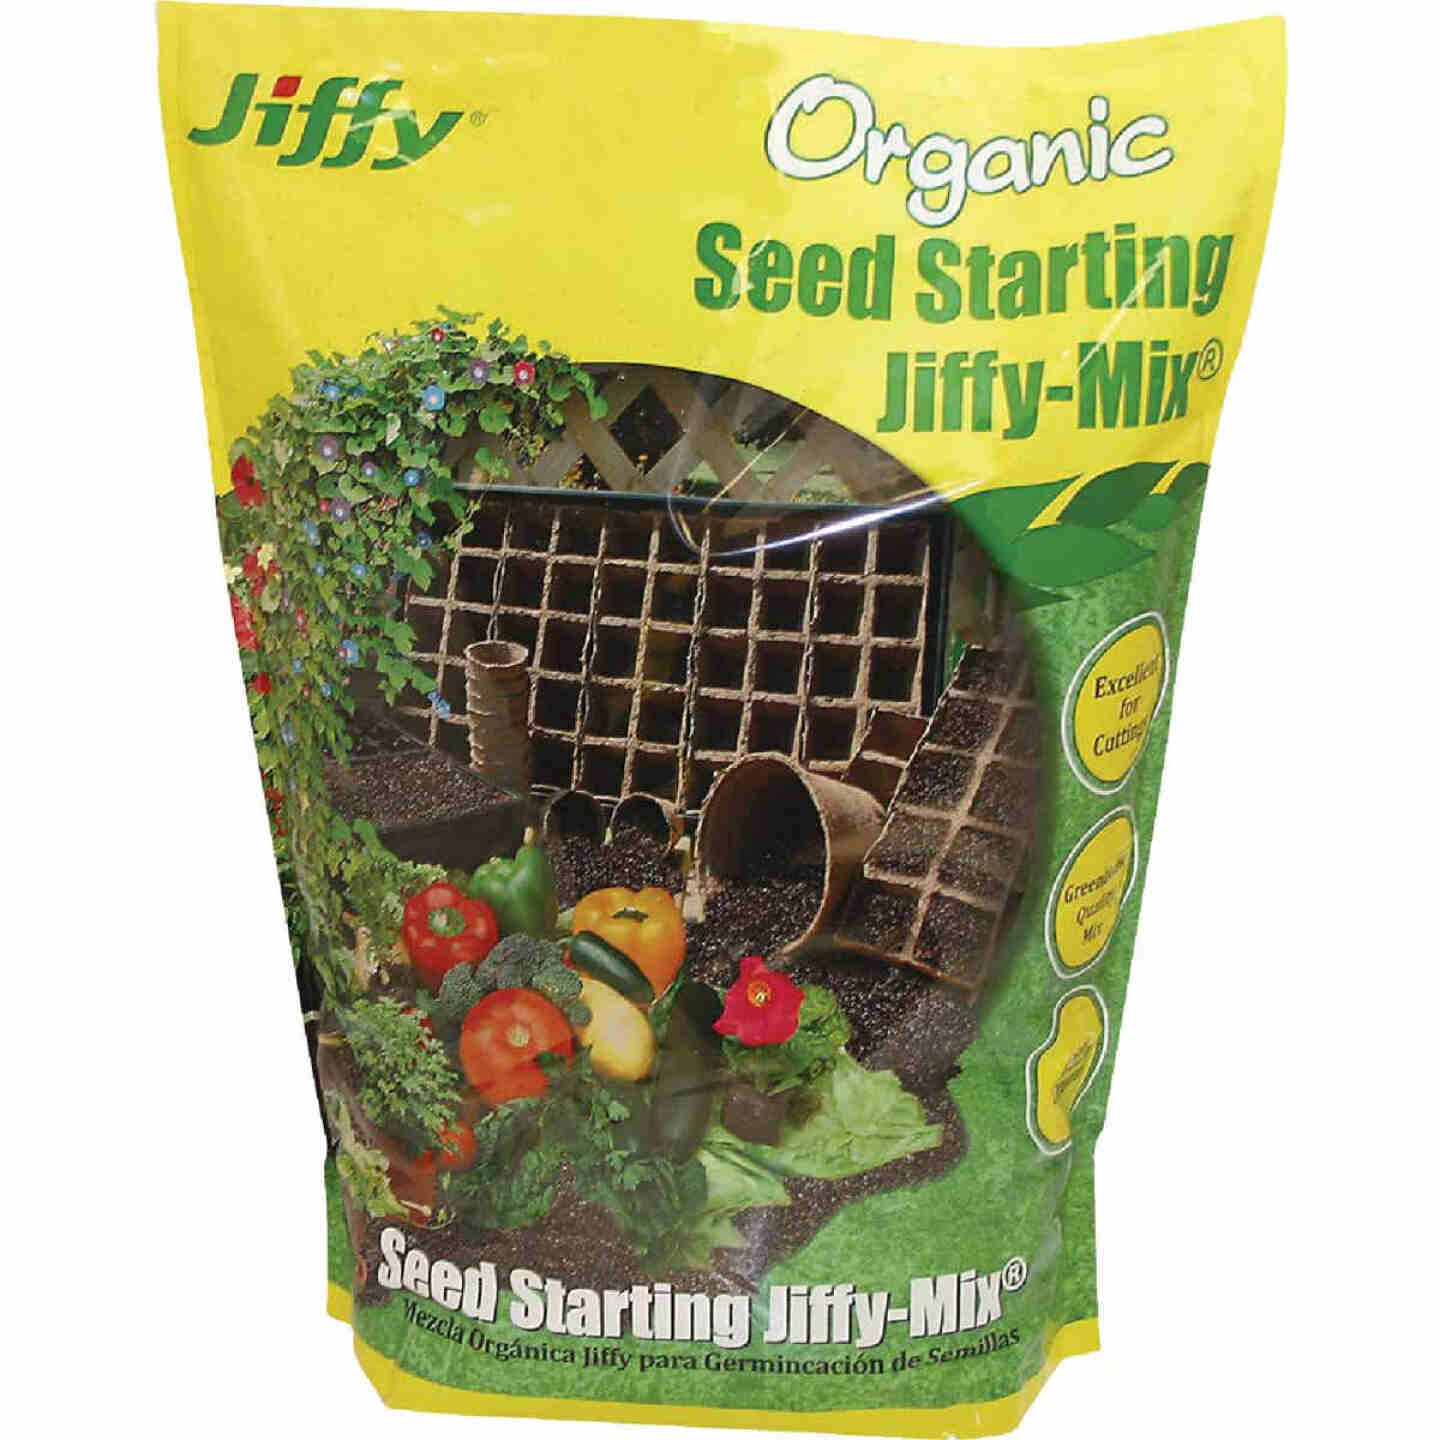 Jiffy 16 Qt. 8 Lb. All Purpose Container Organic Seed Starting Mix Image 1